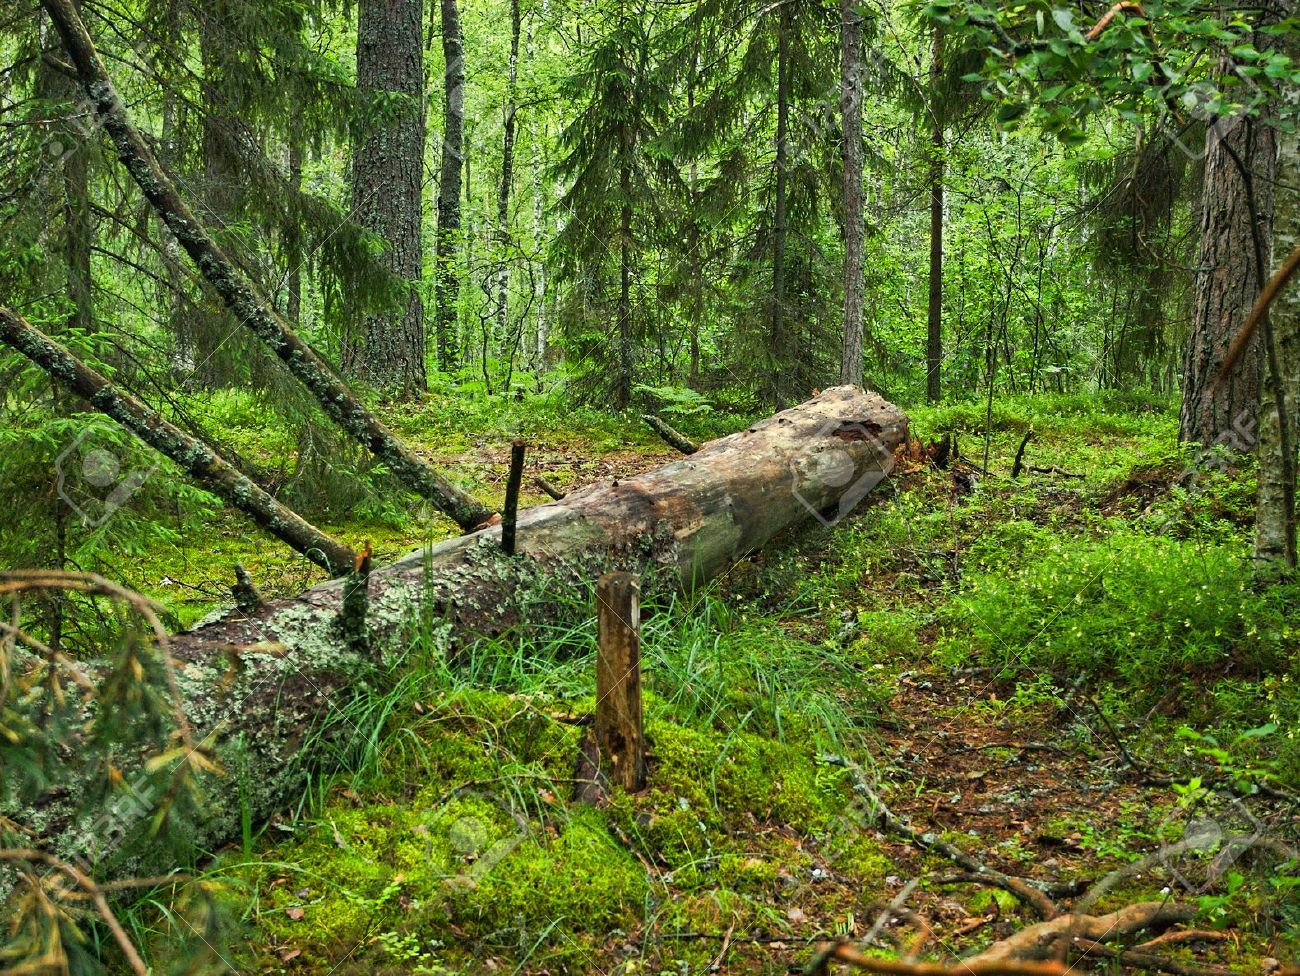 6980317-fallen-tree-covered-with-moss-lying-in-a-dense-forest-stock-photo